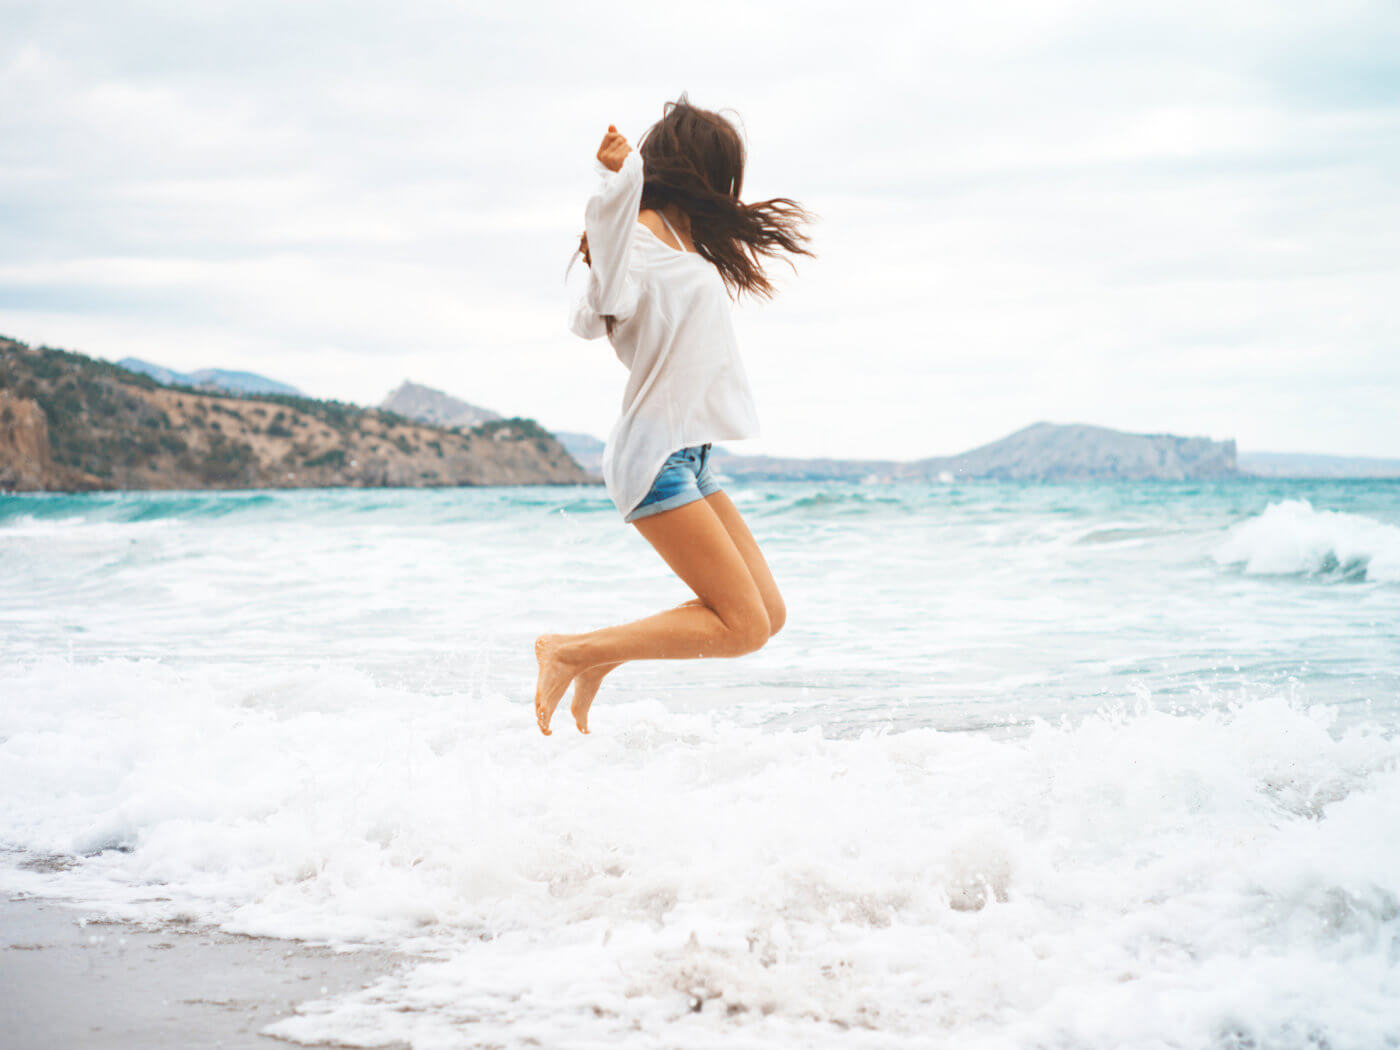 Outdoor photo of beautiful young woman jumping at the sea